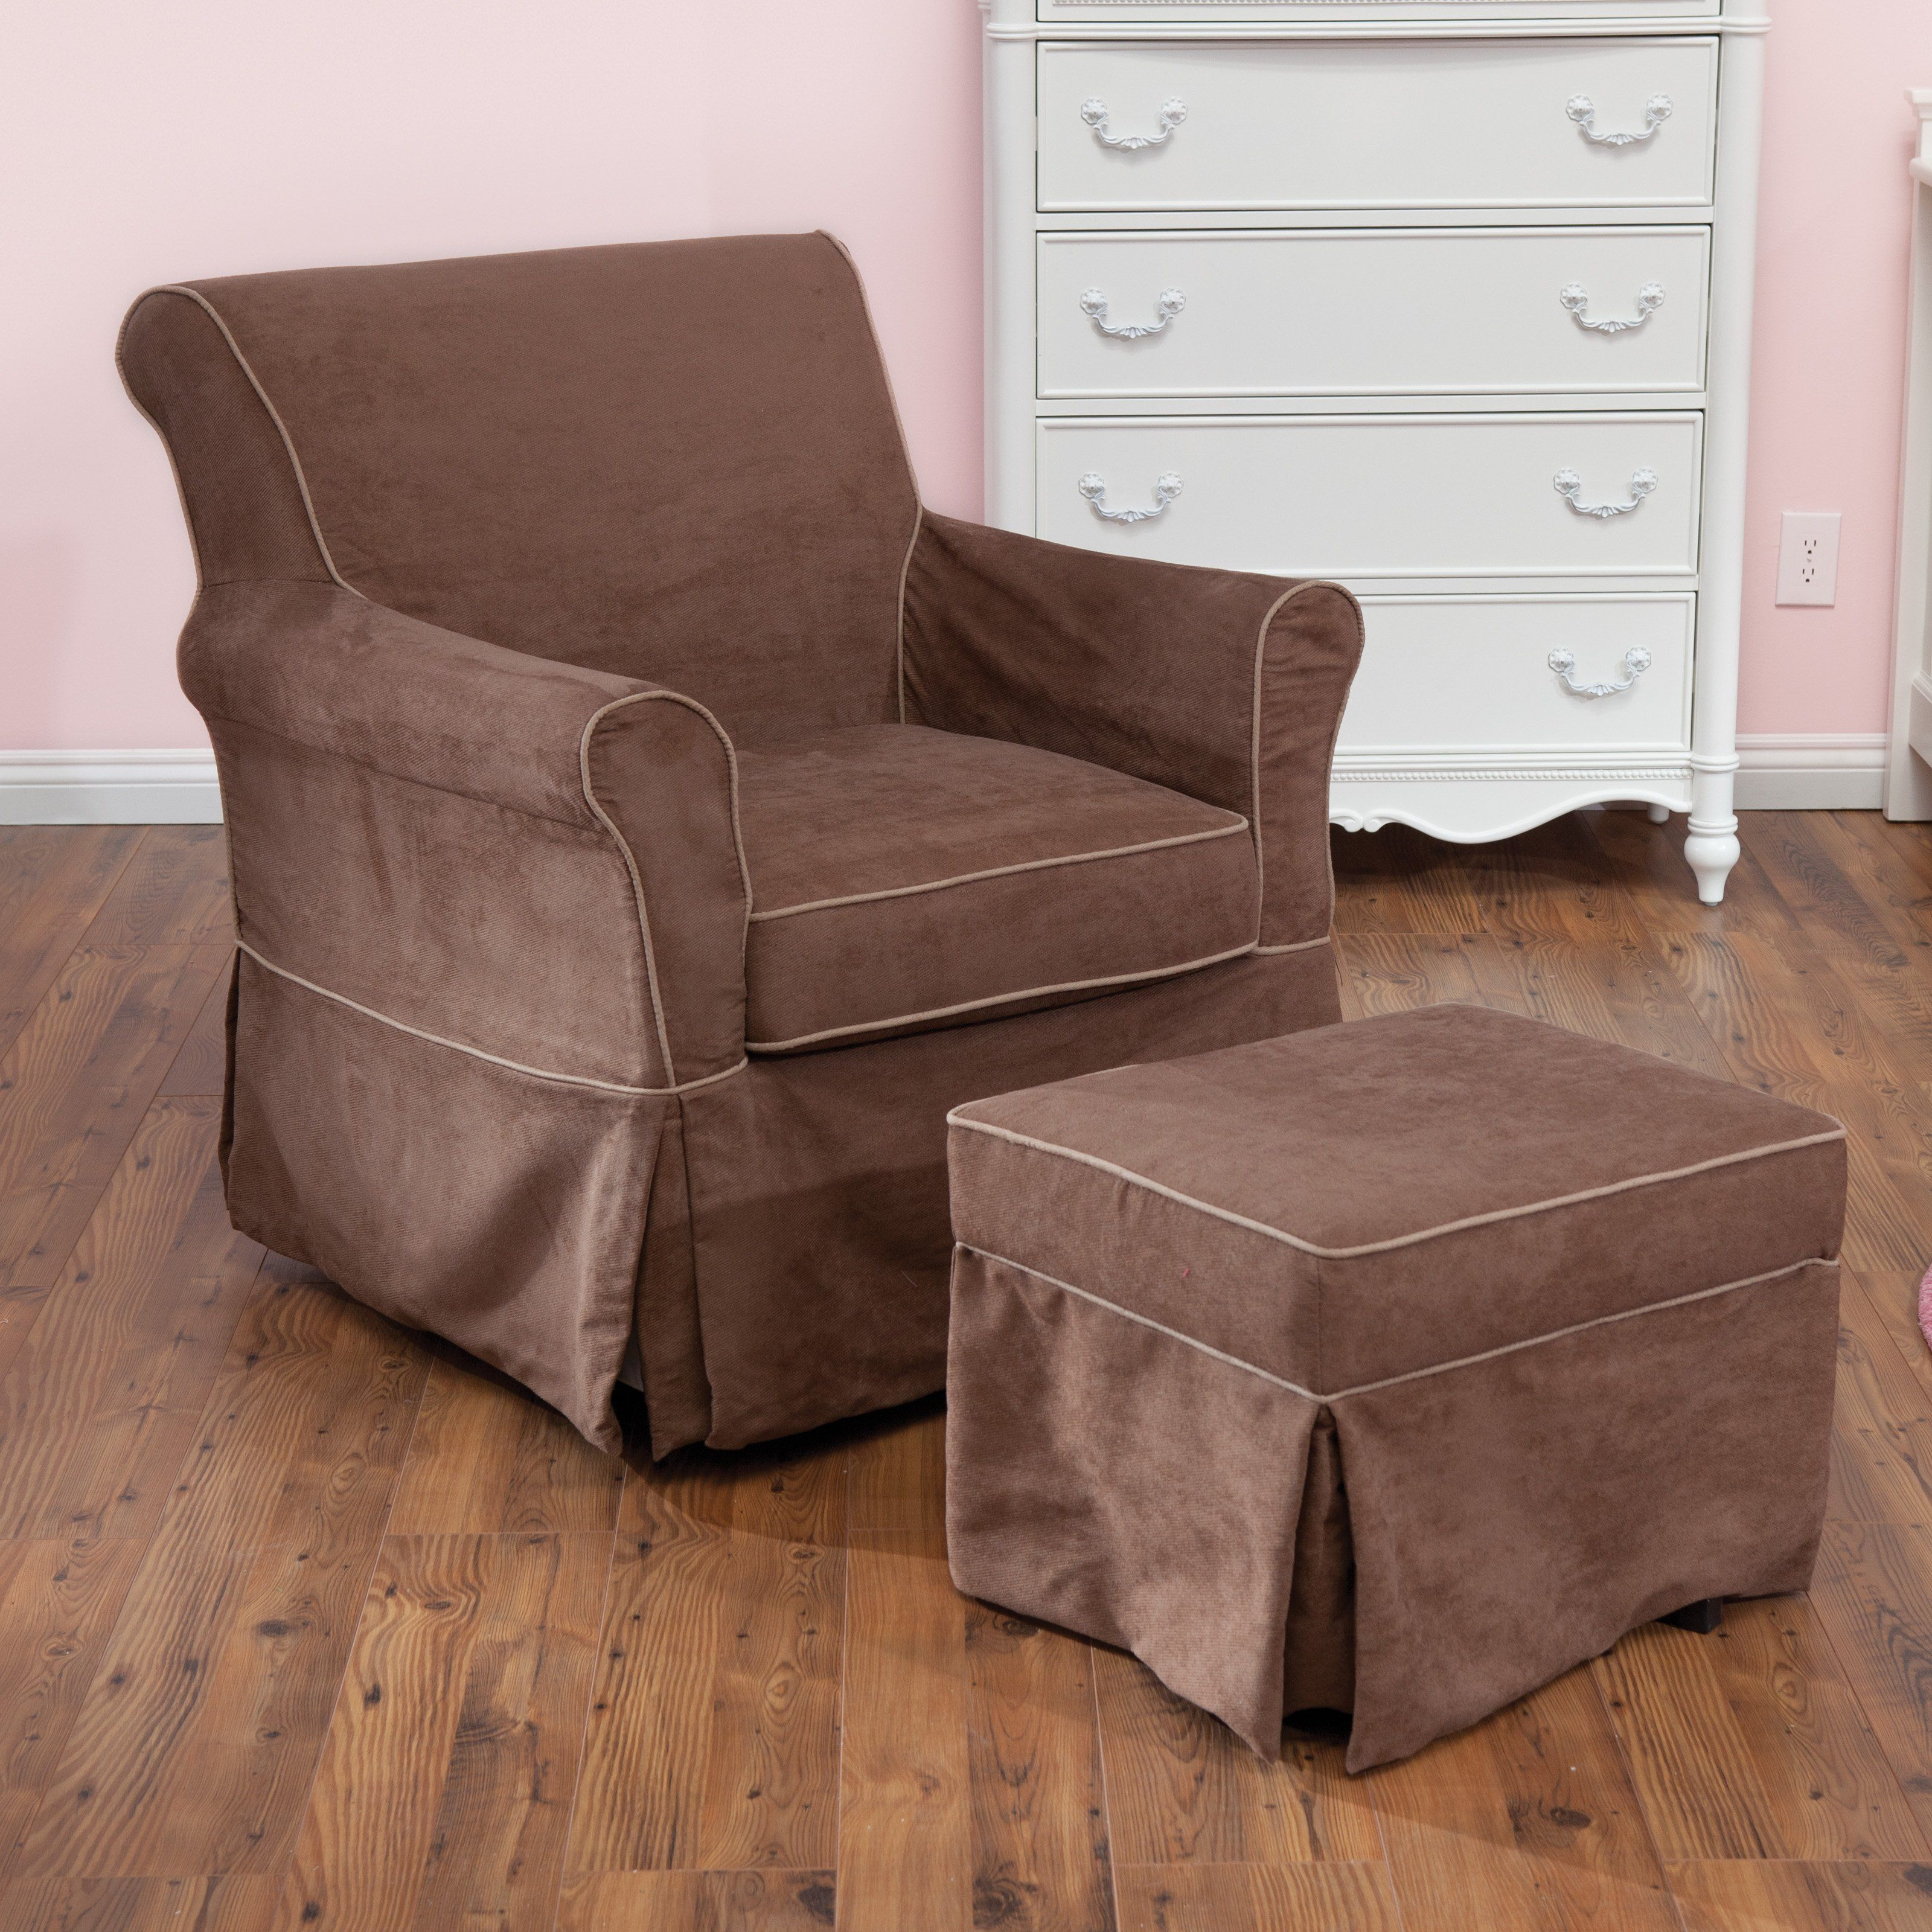 Dorel Asia Swivel Glider and Ottoman Set Ordering our